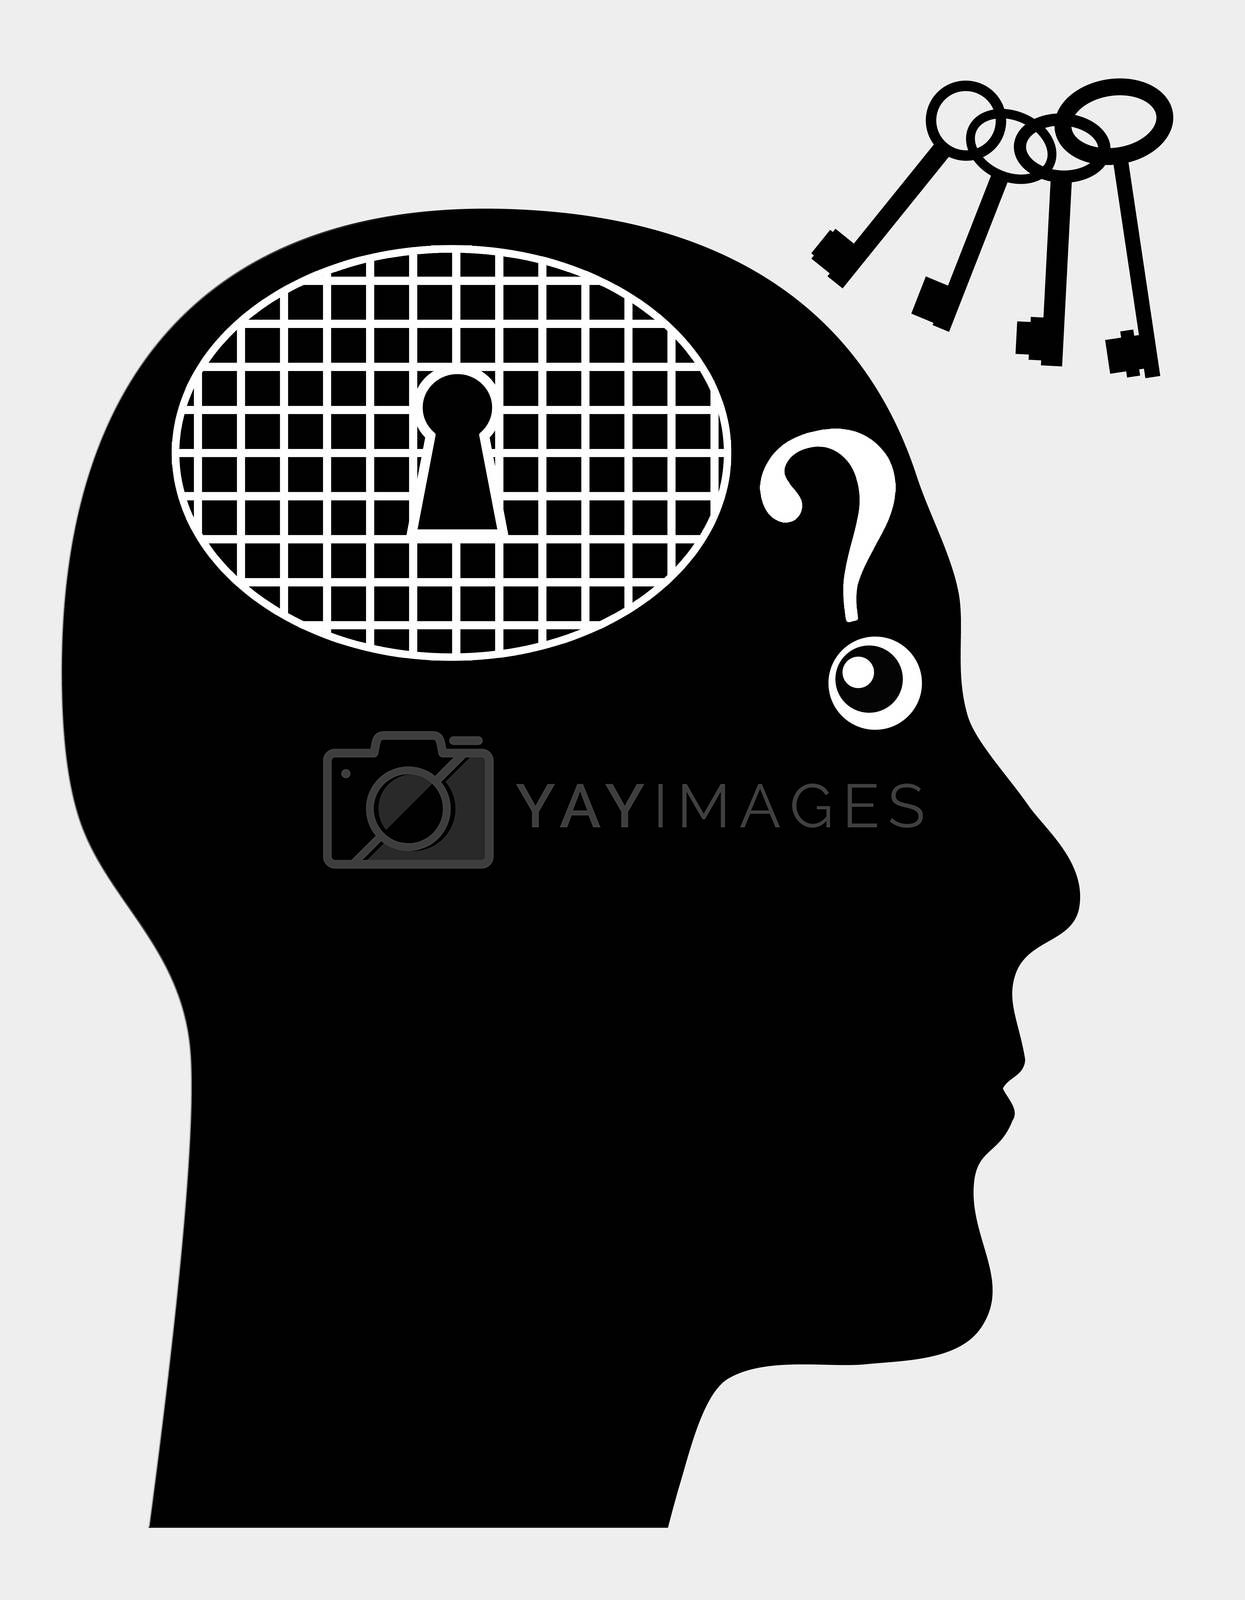 Concept sign of person suffering from mental illness like amnesia or dementia